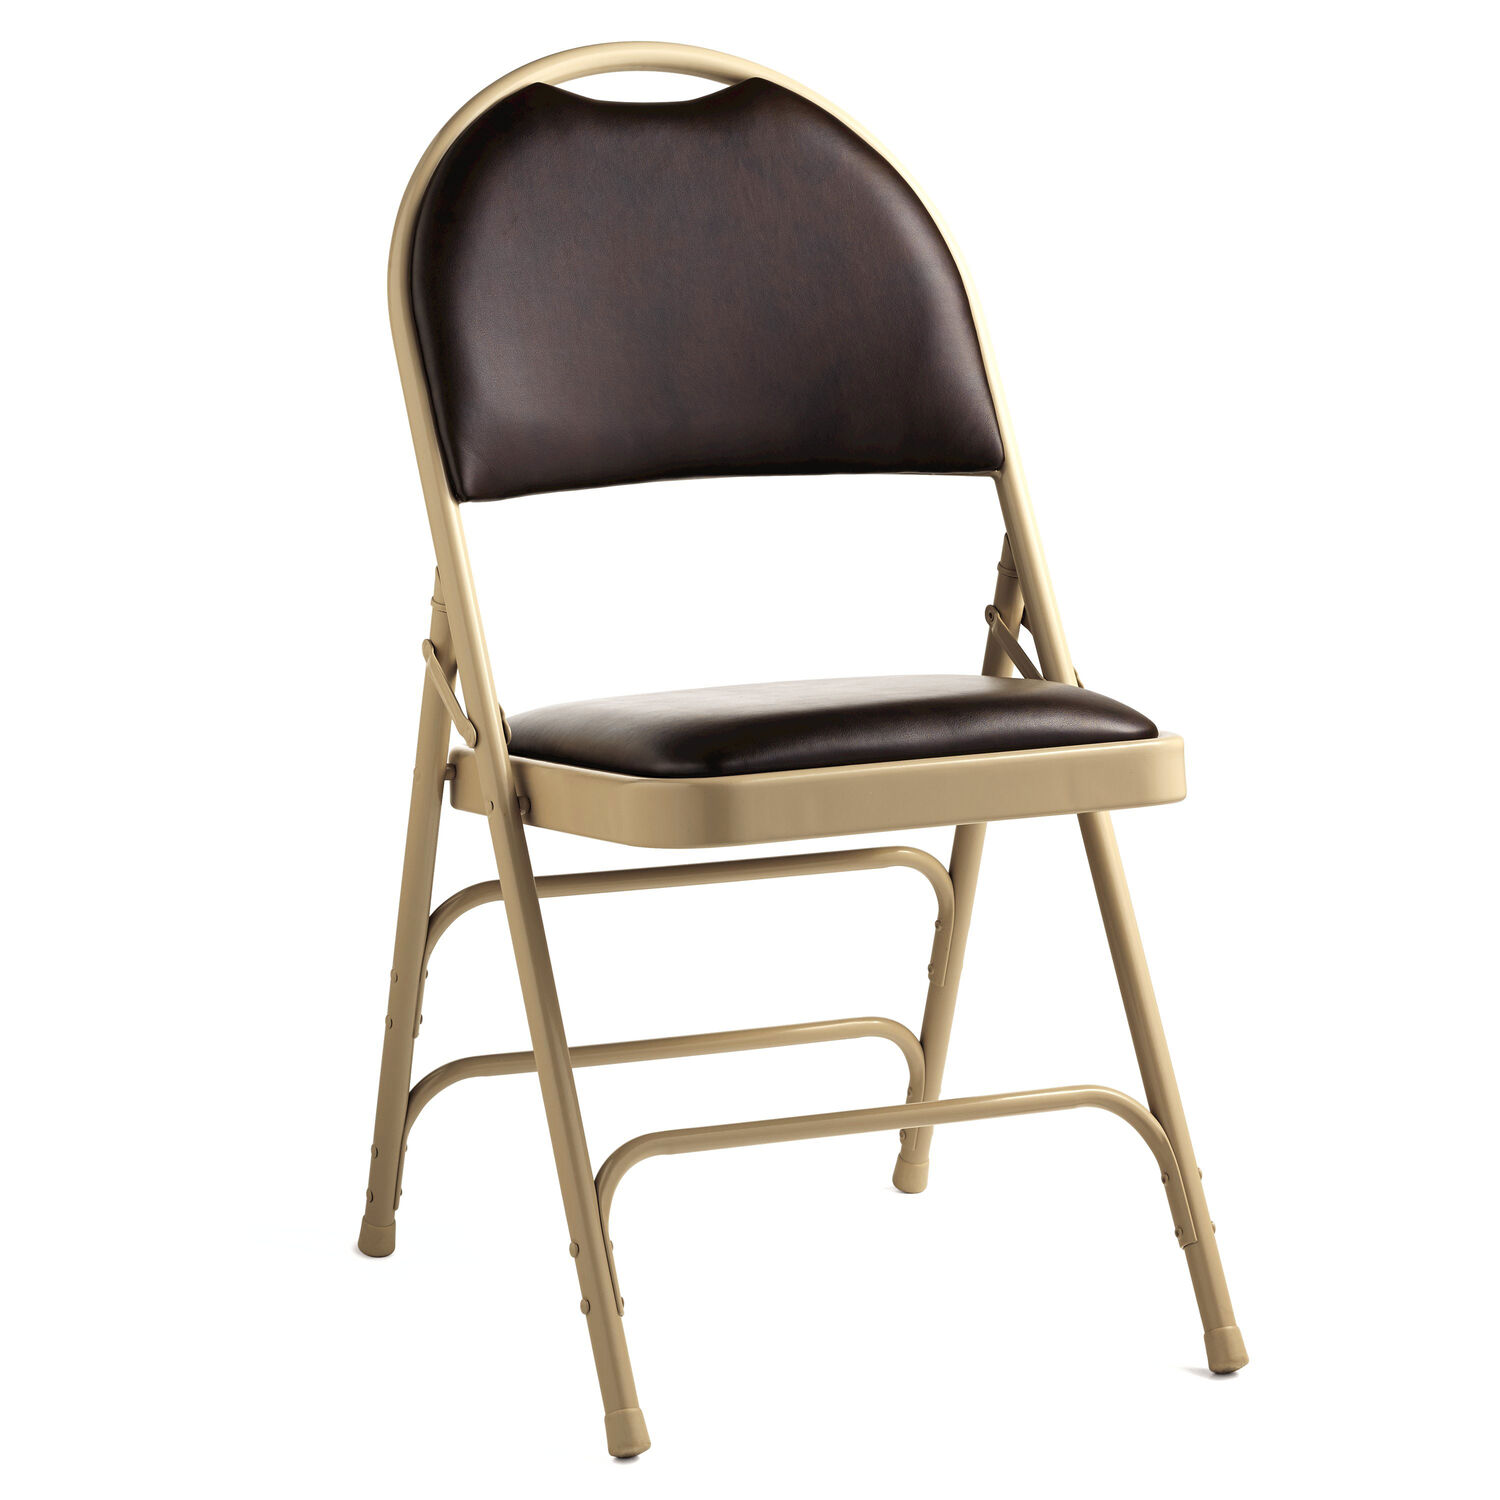 New Leather Folding Chair Luxury